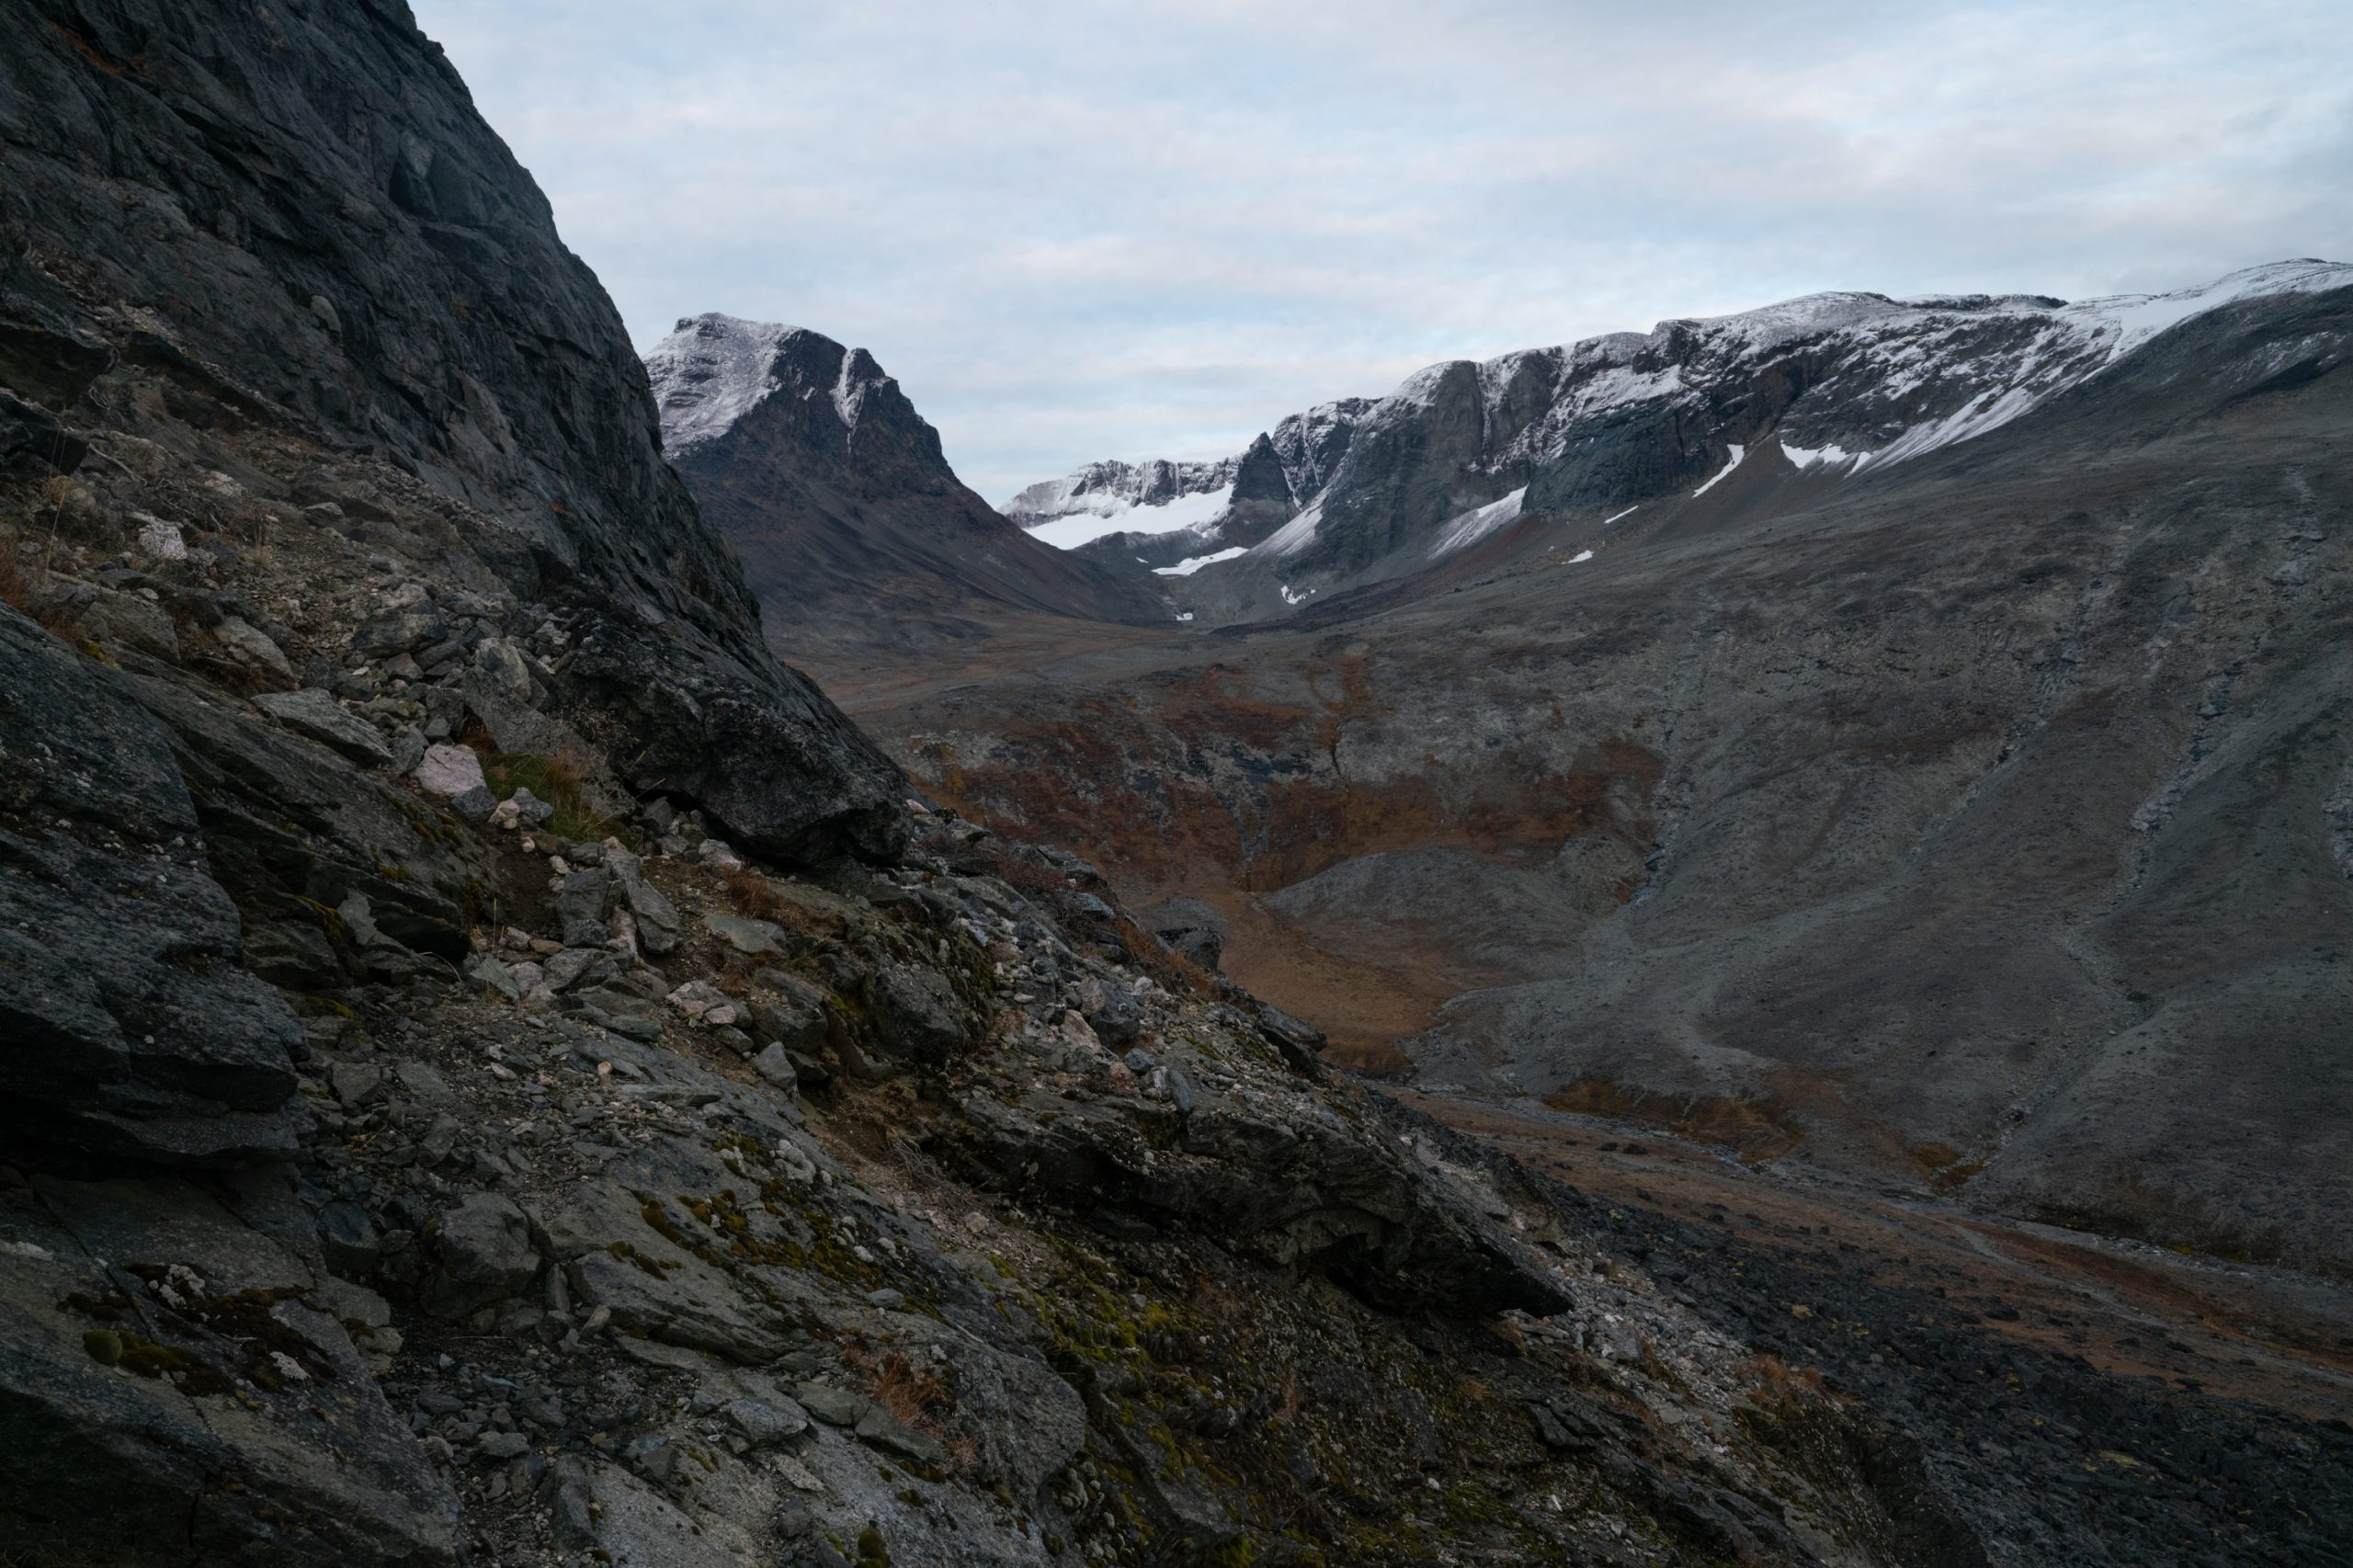 The Kvanefjeld Project Is A Mineral Deposit Nestled In The